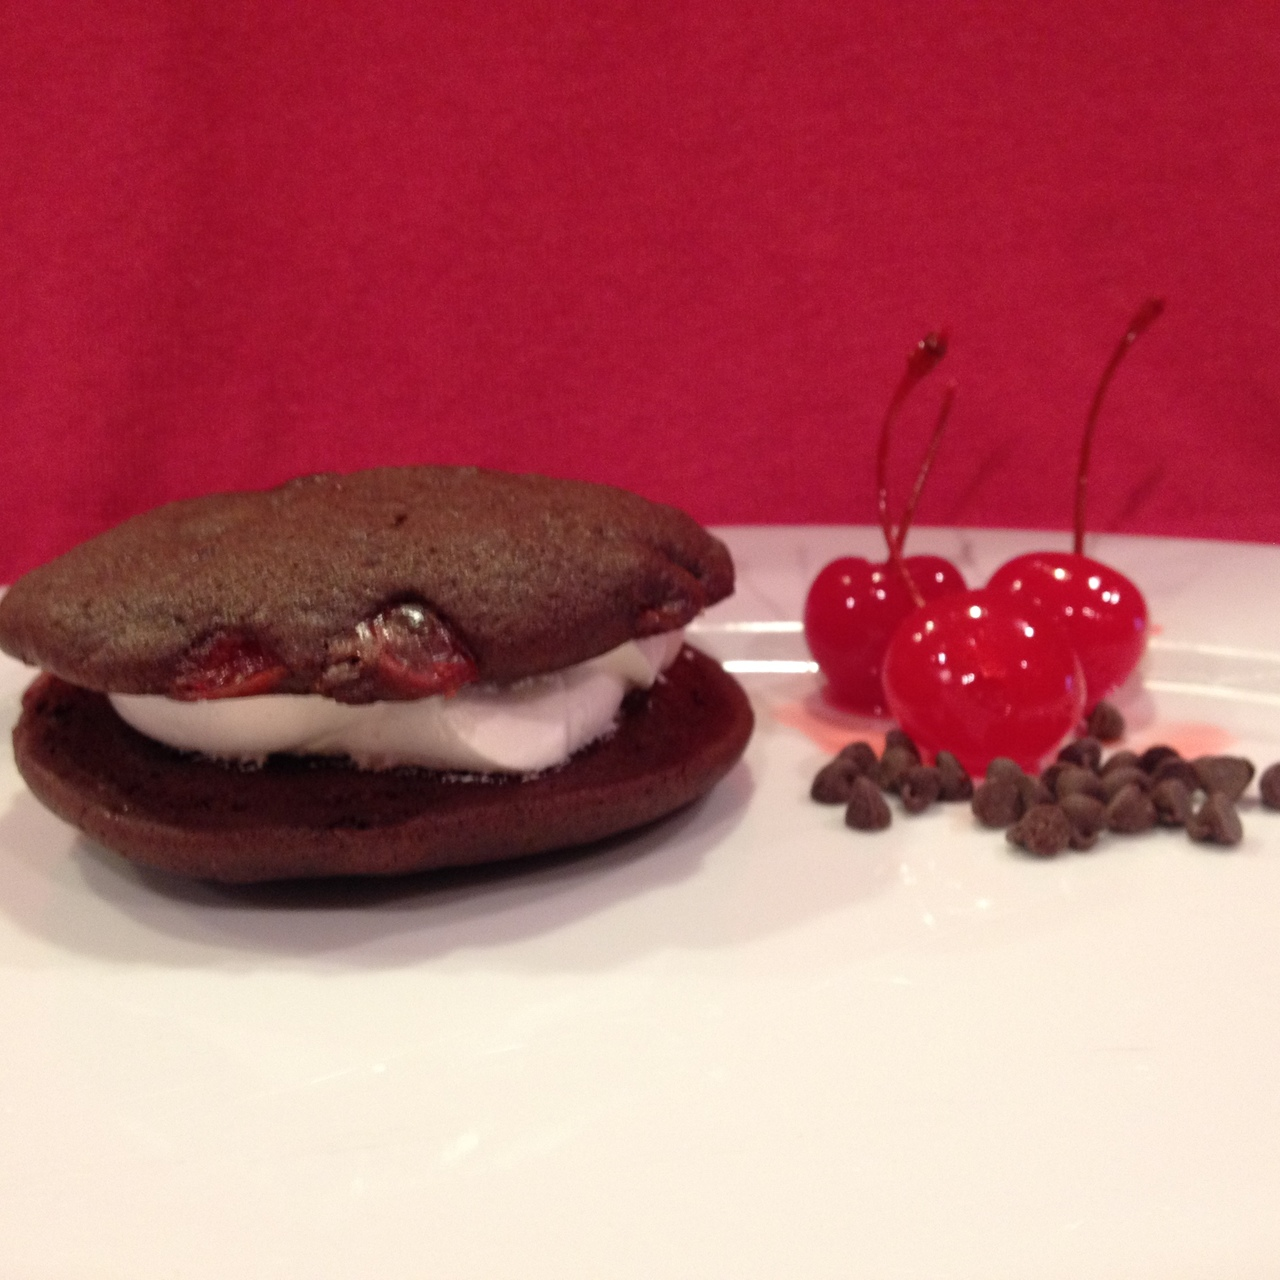 12 Pack- Large Chocolate Cherry Whoopie Pies